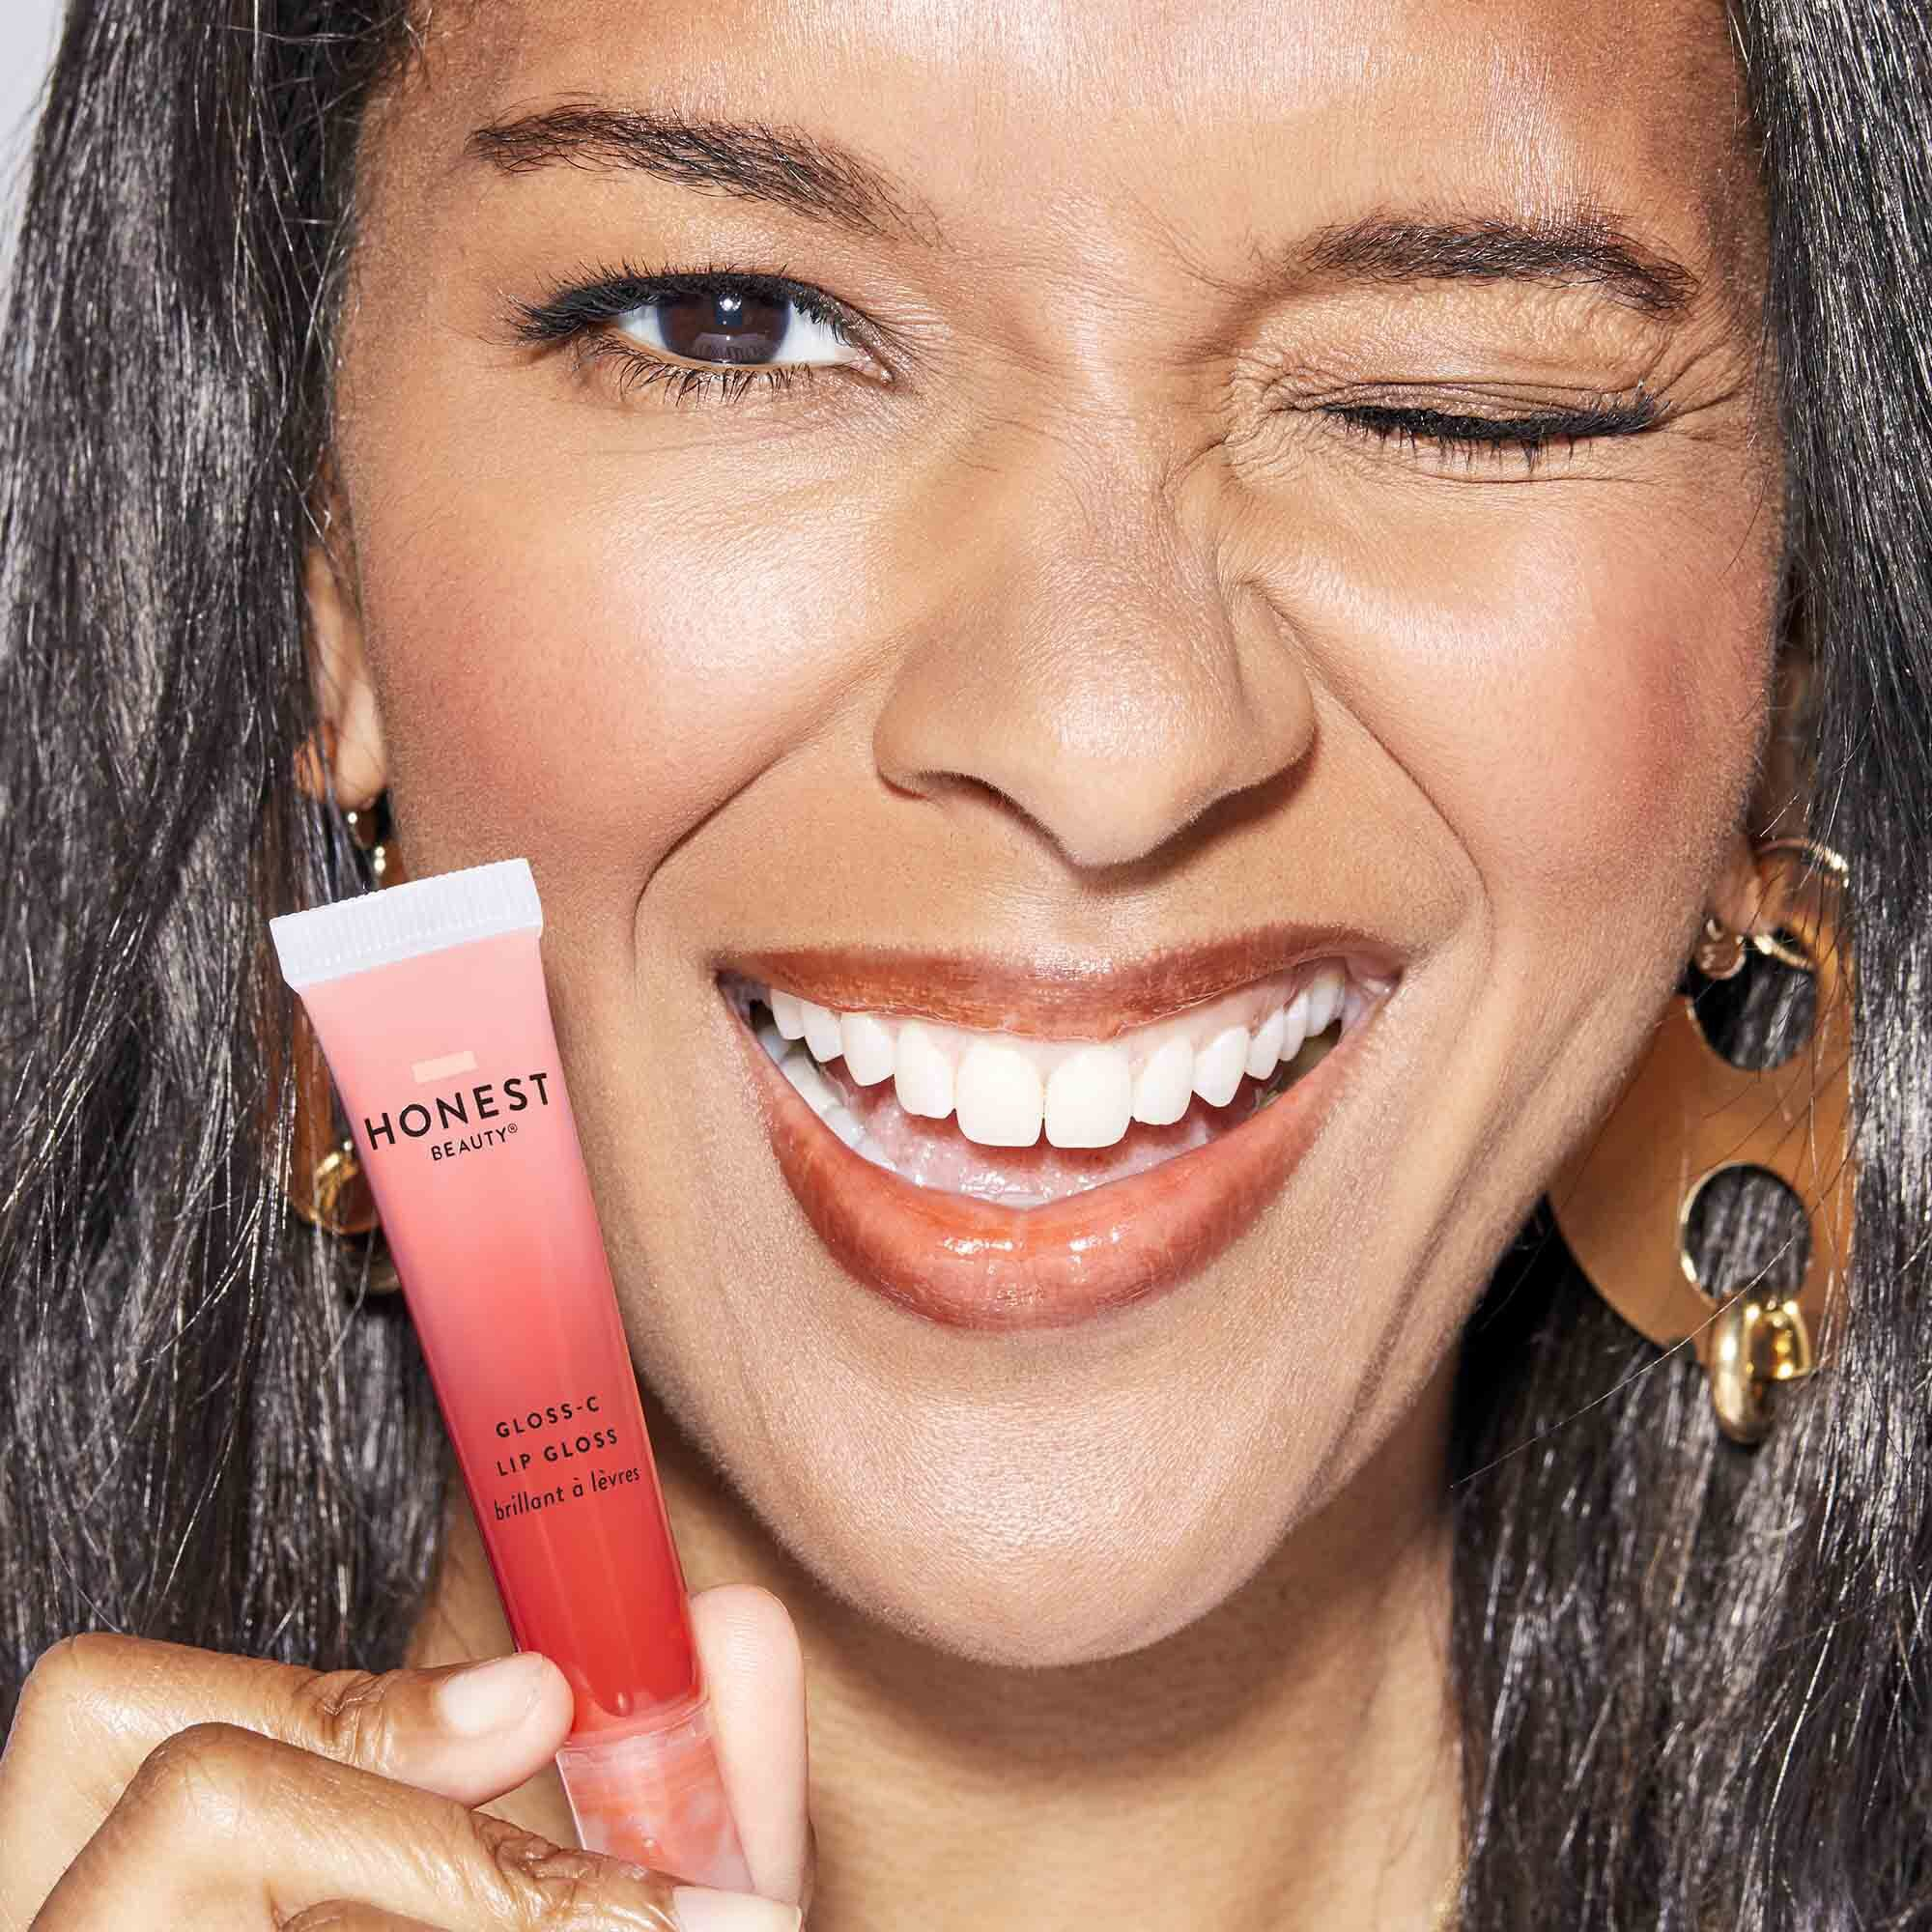 Gloss-C Lip Gloss in Poppy Topaz